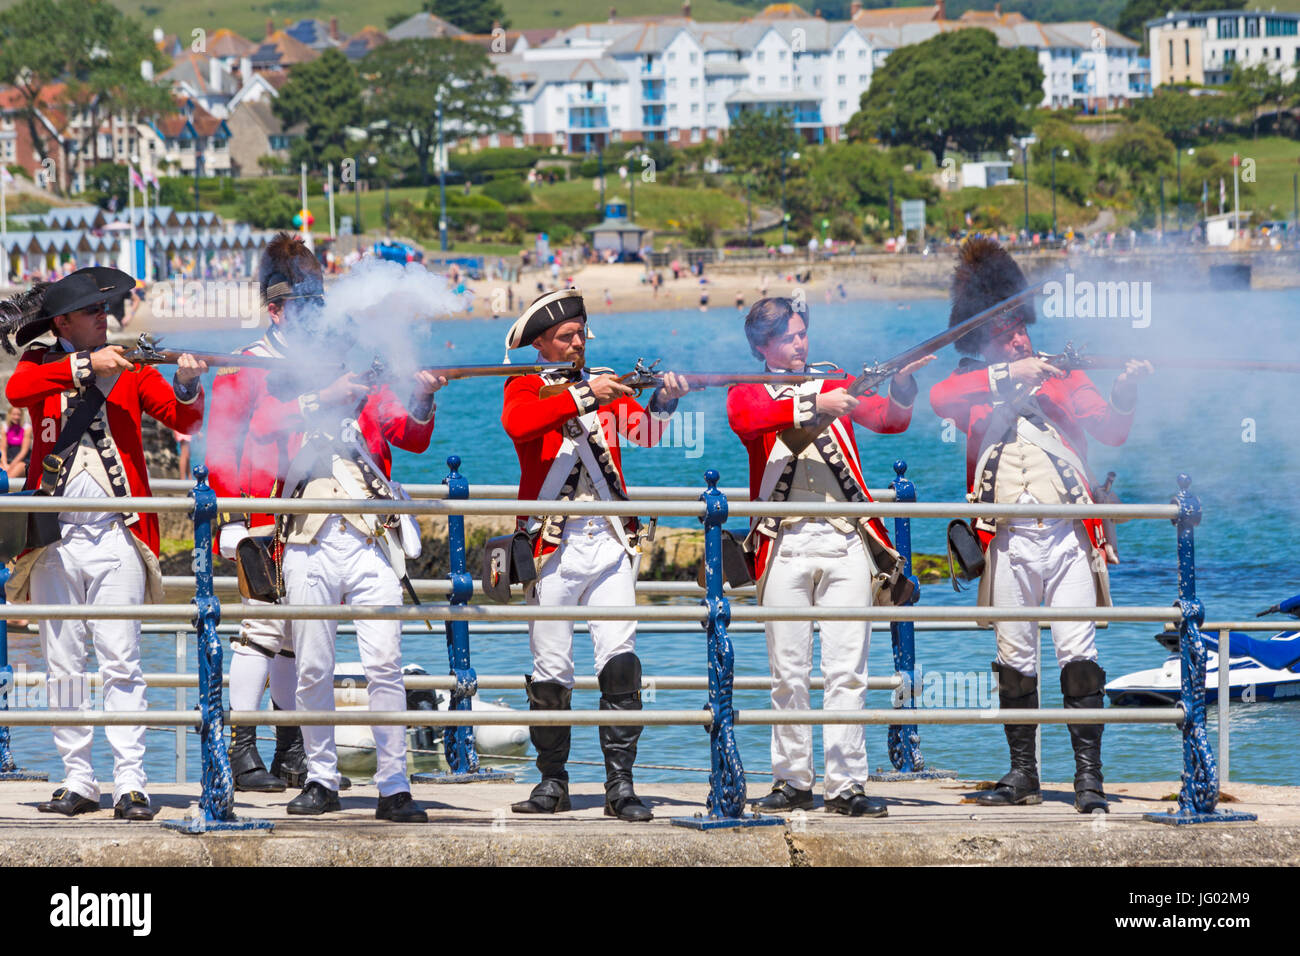 Swanage, Dorset, UK 2nd July 2017. Crowds descend on Swanage for the Purbeck Pirate Festival, to raise money for - Stock Image